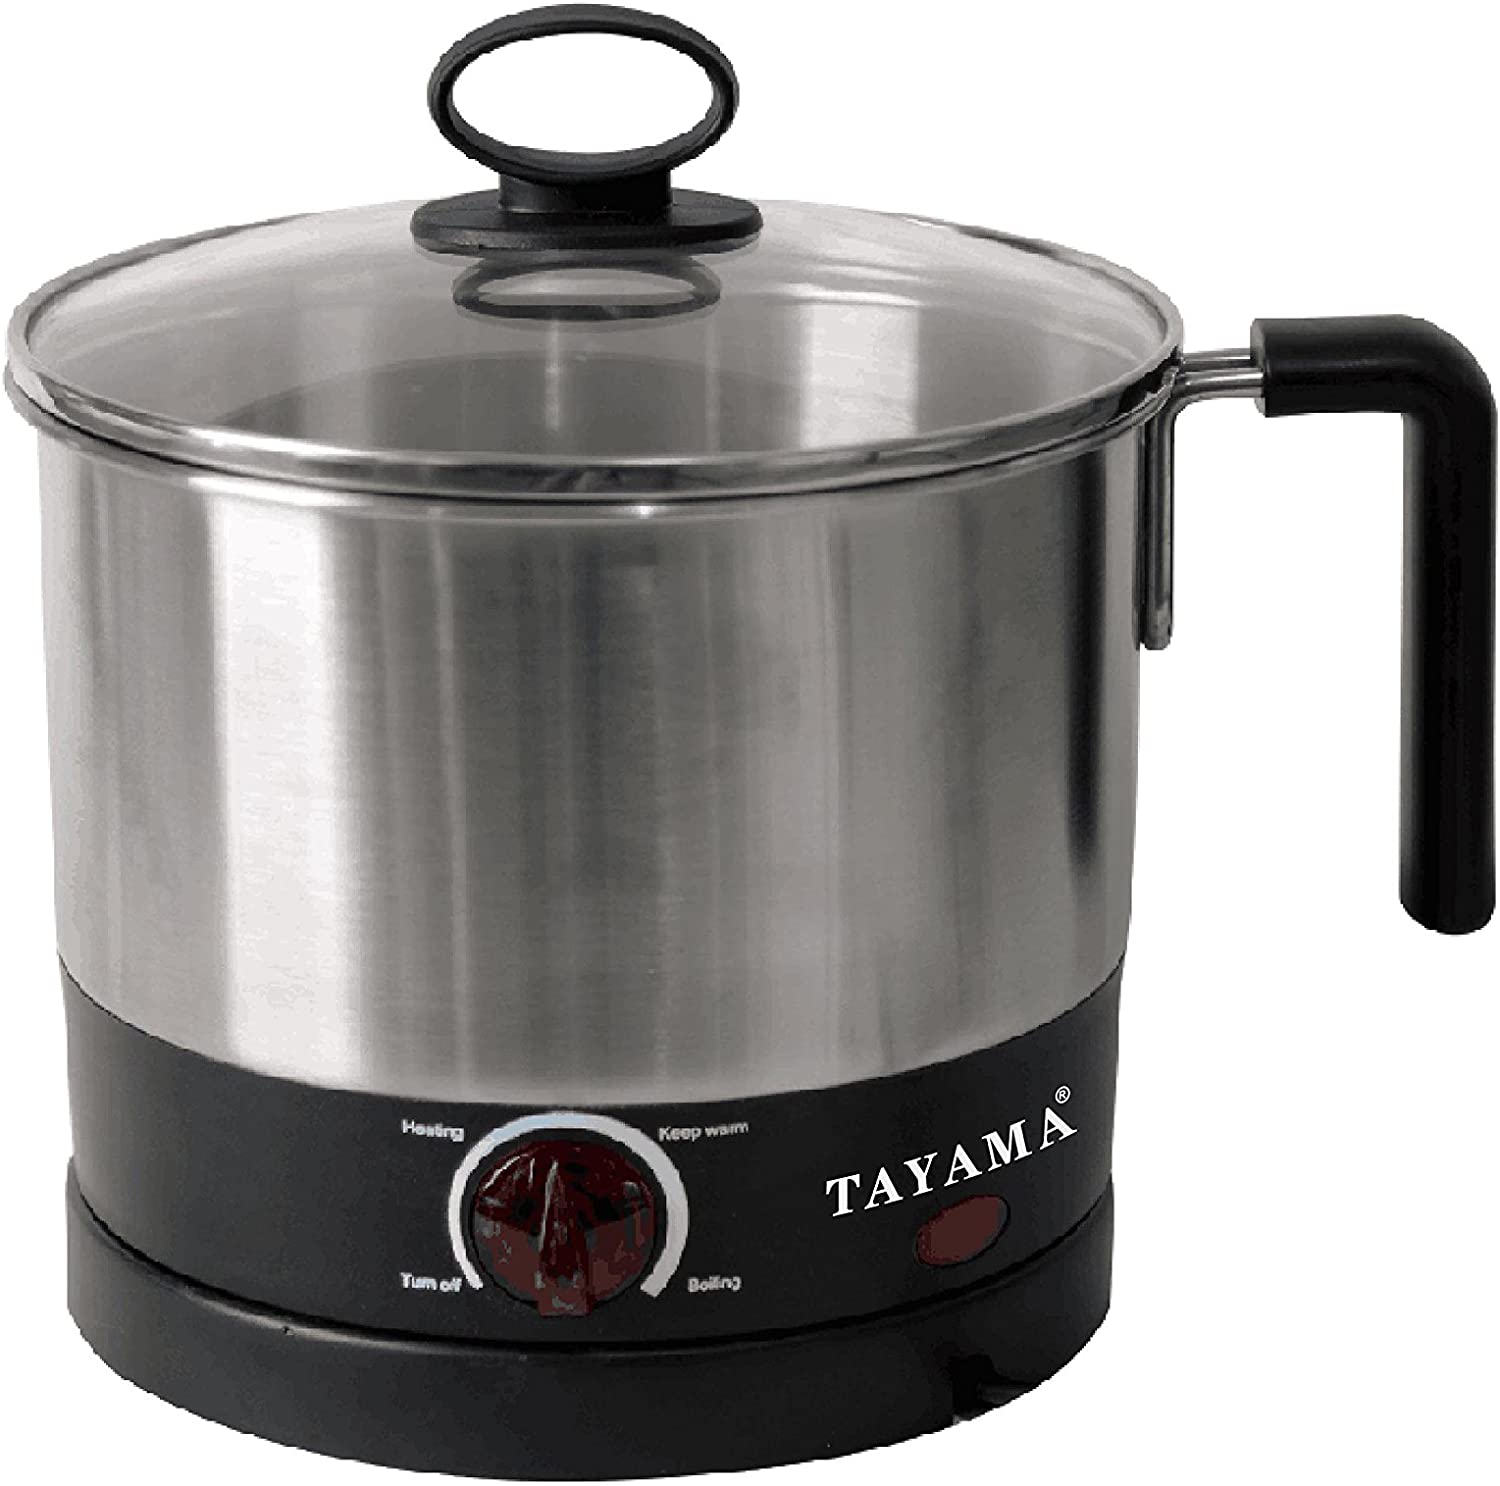 Tayama Noodle Cooker & Water Kettle 1 Liter (4-Cup), stainless steel (EPC-01R)